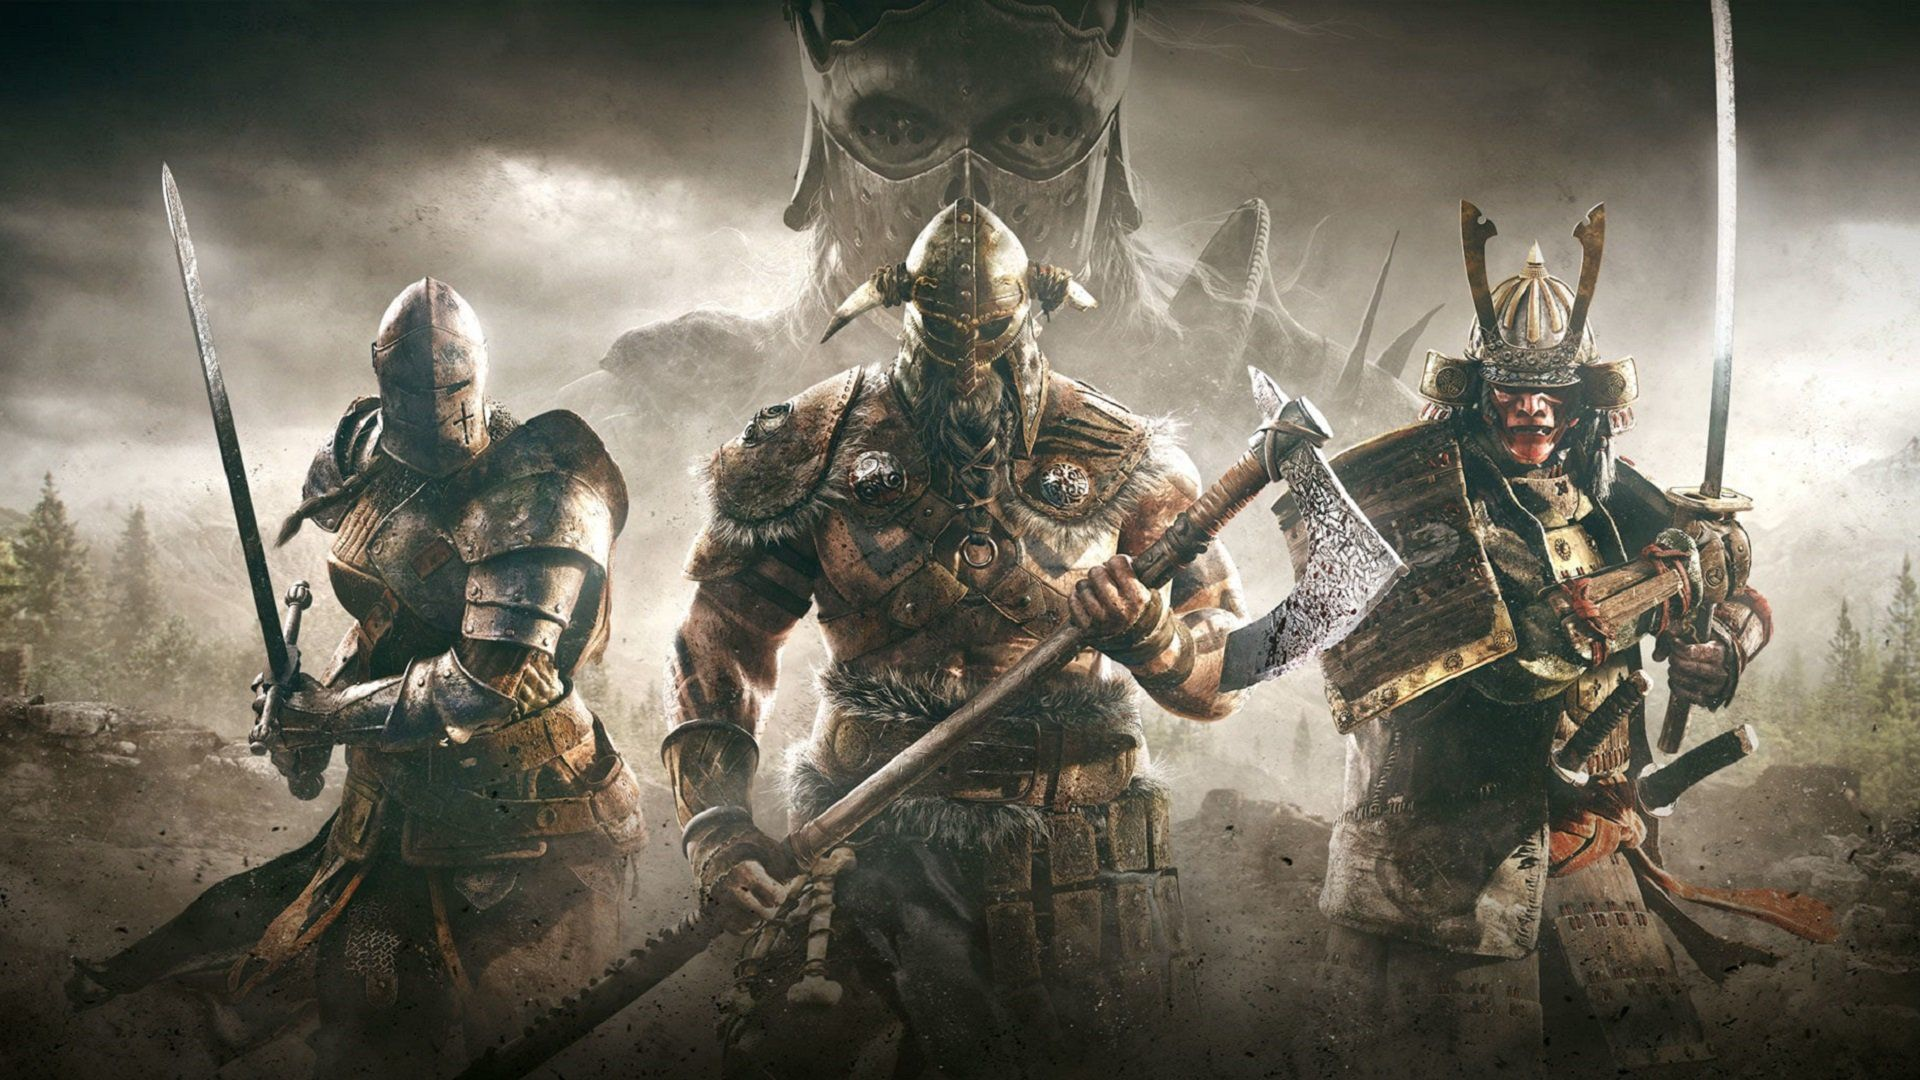 For Honor Beta Impressions Clash of the Titans (With